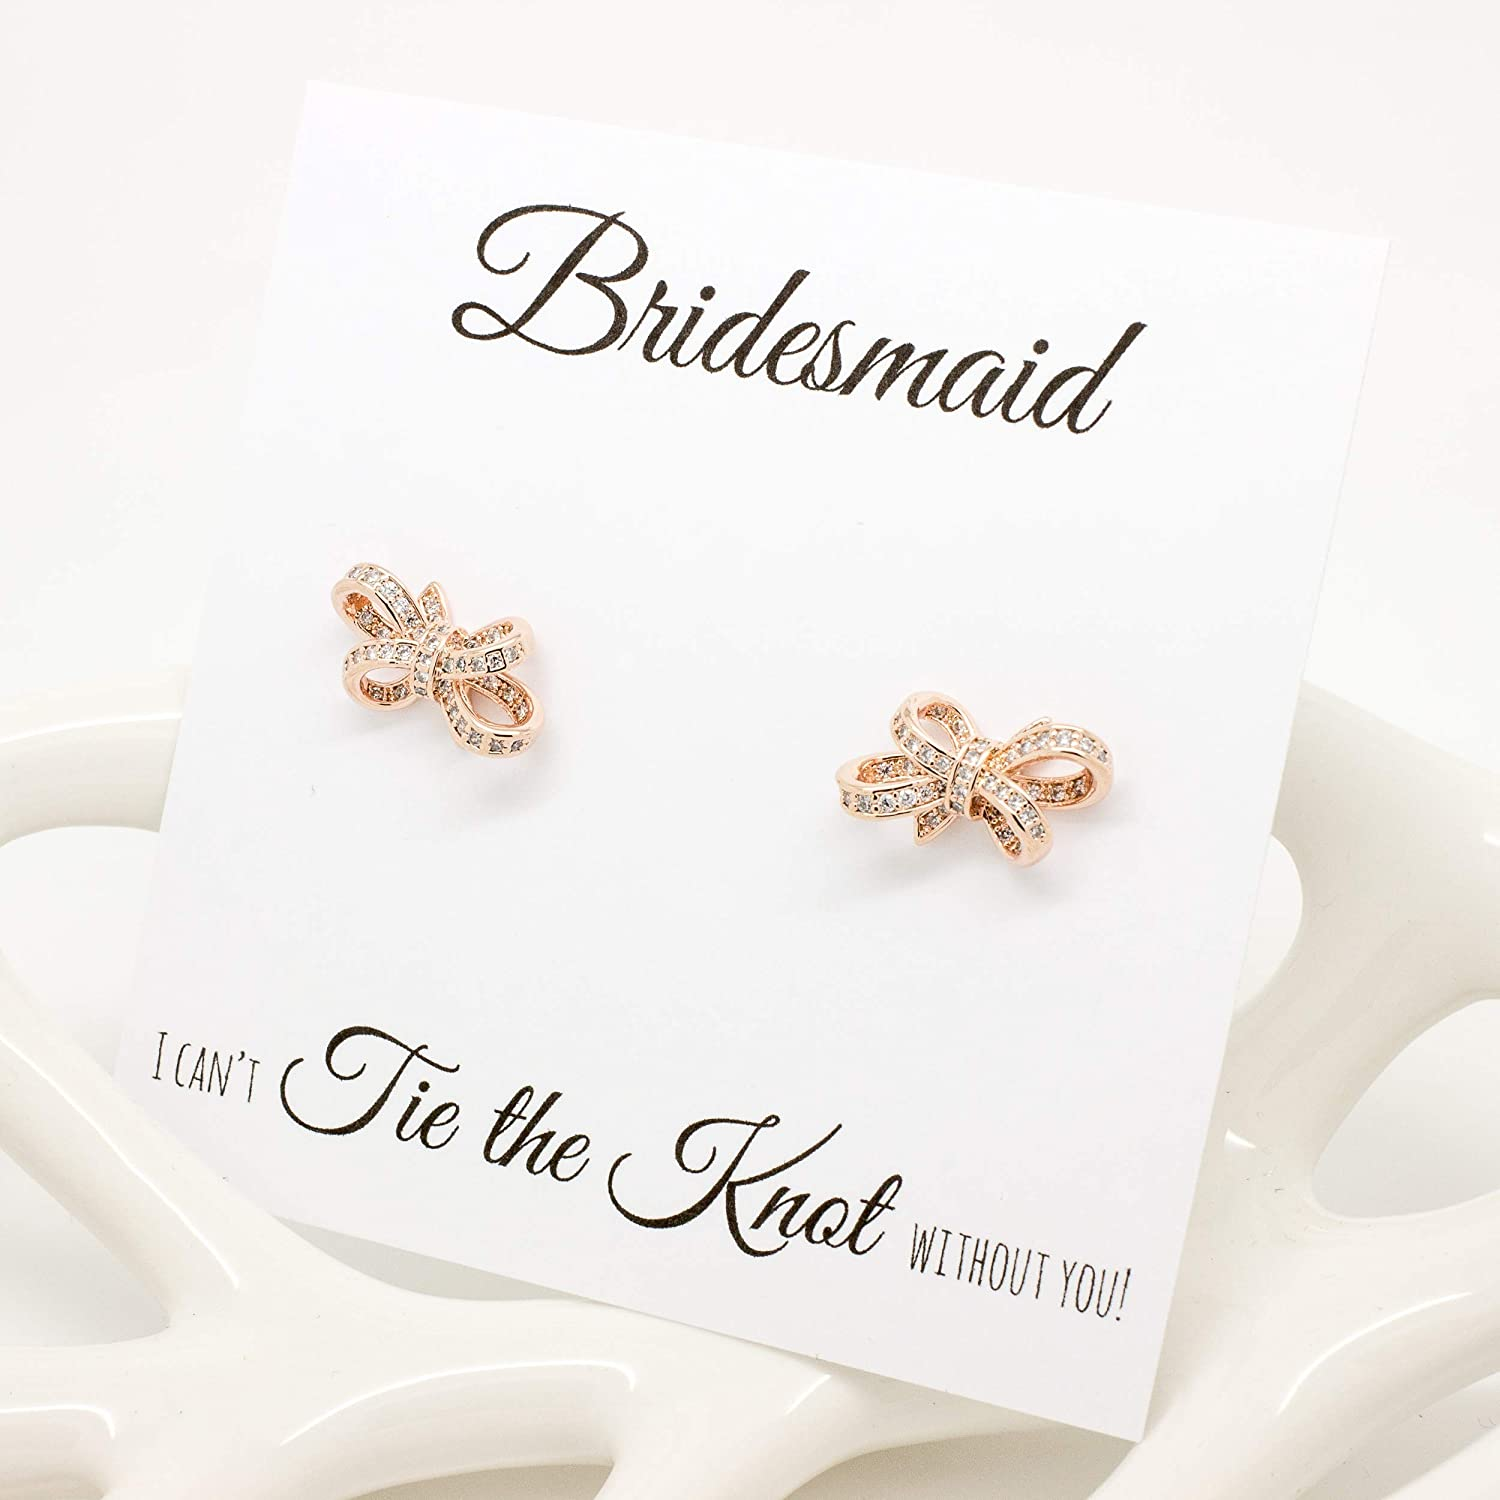 Bridesmaid Earrings Gift Bridesmaid Earrings Gold or any other Bridesmaid Earrings Set of 1-6 Bridesmaid Earrings Stone Earrings